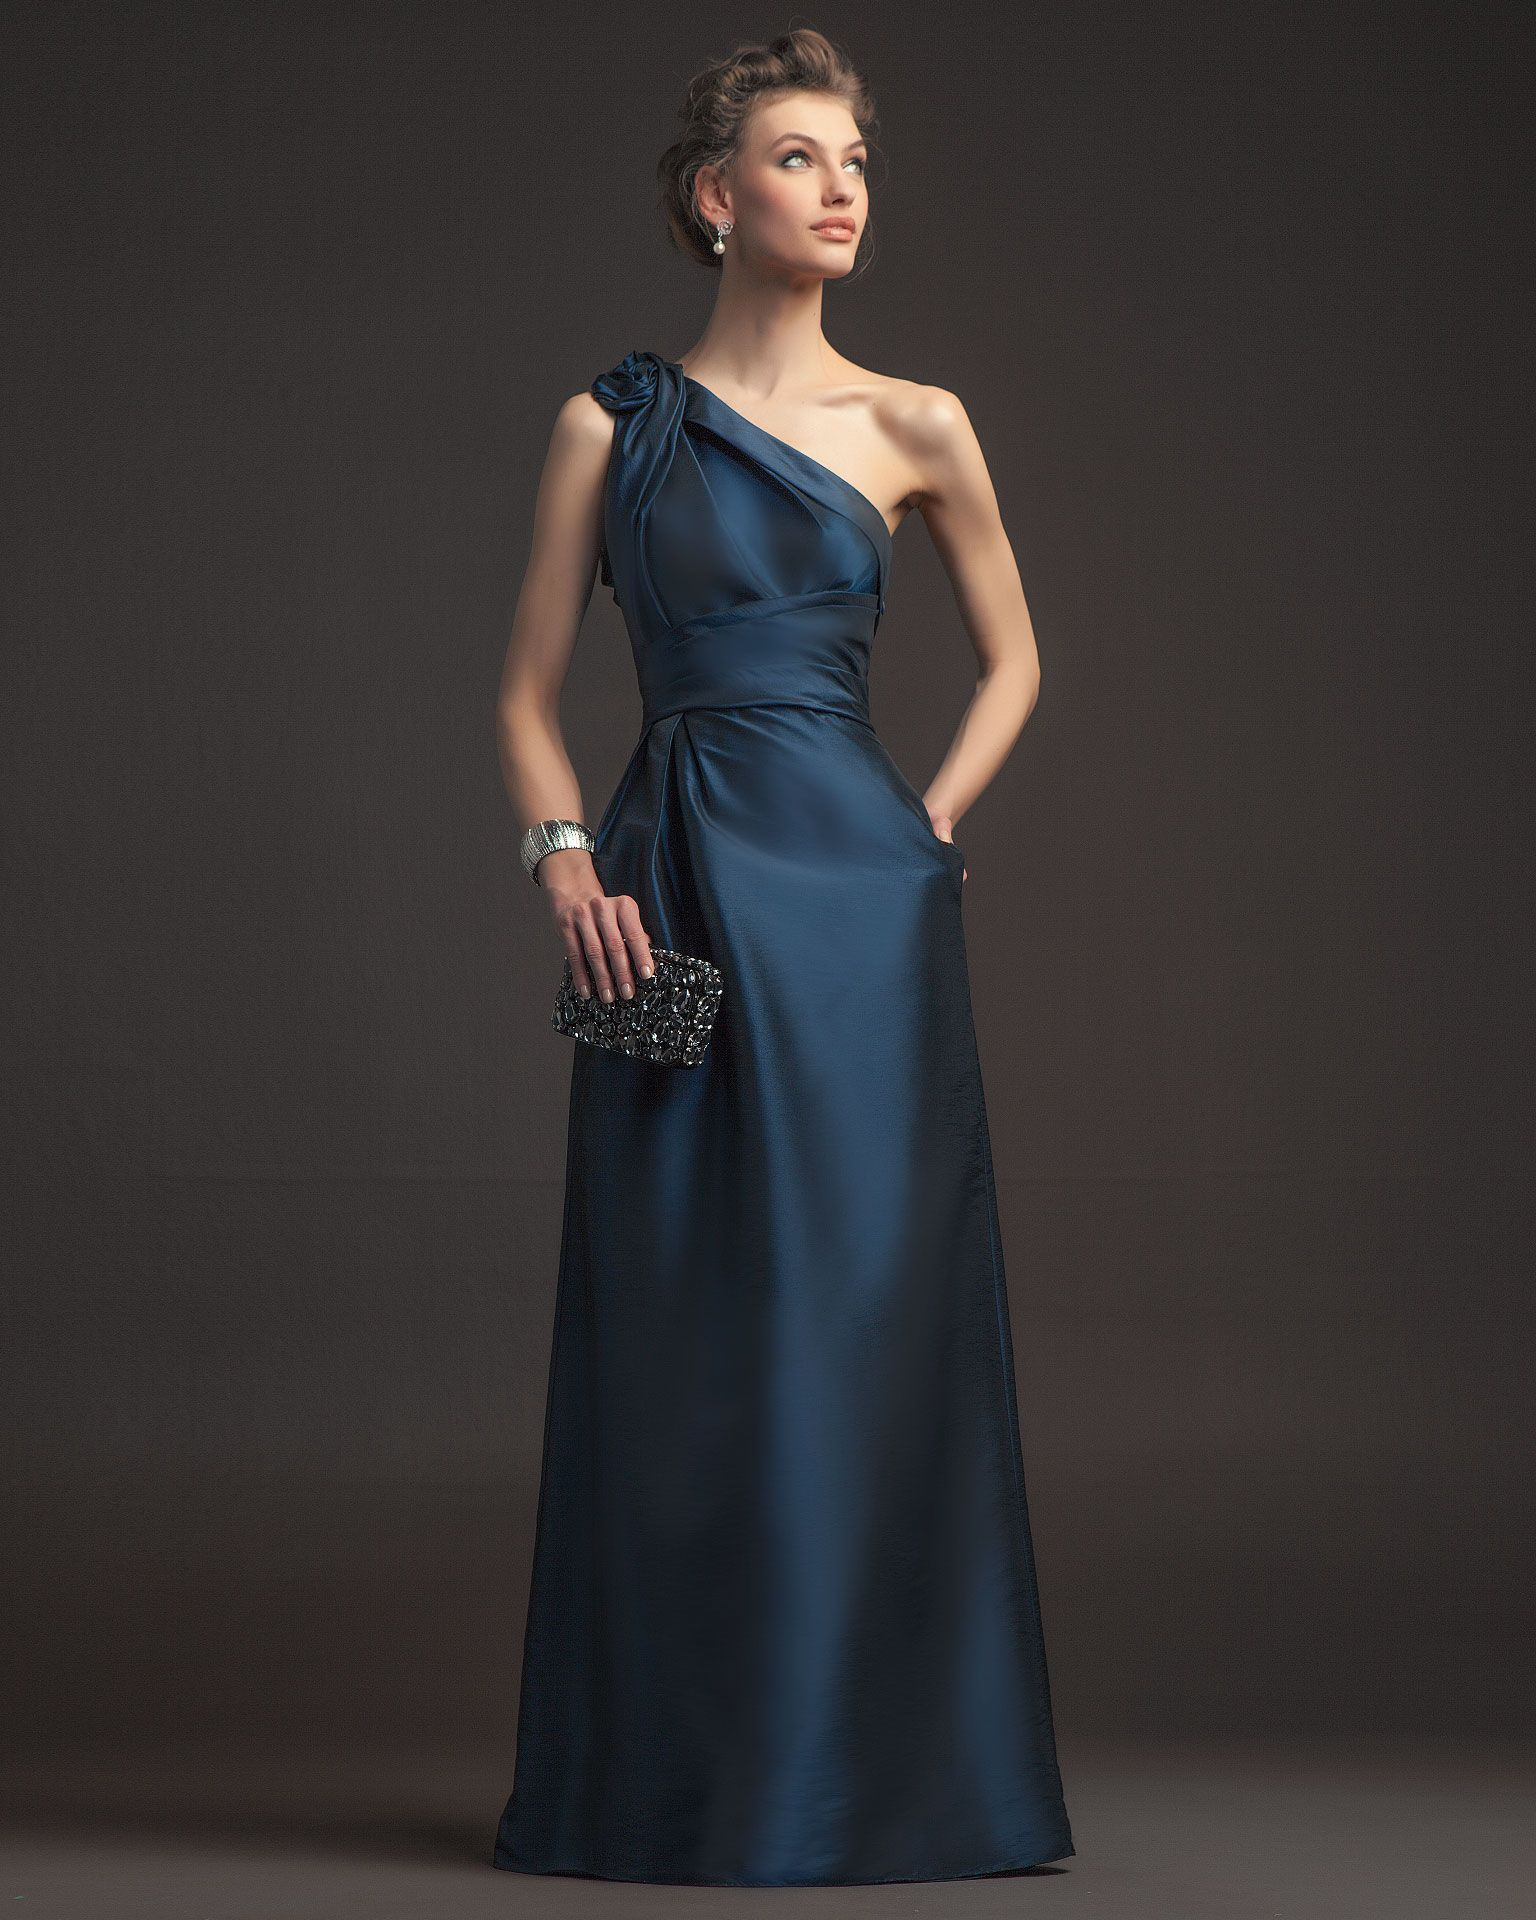 Evening dress by aire barcelona more photos at efr